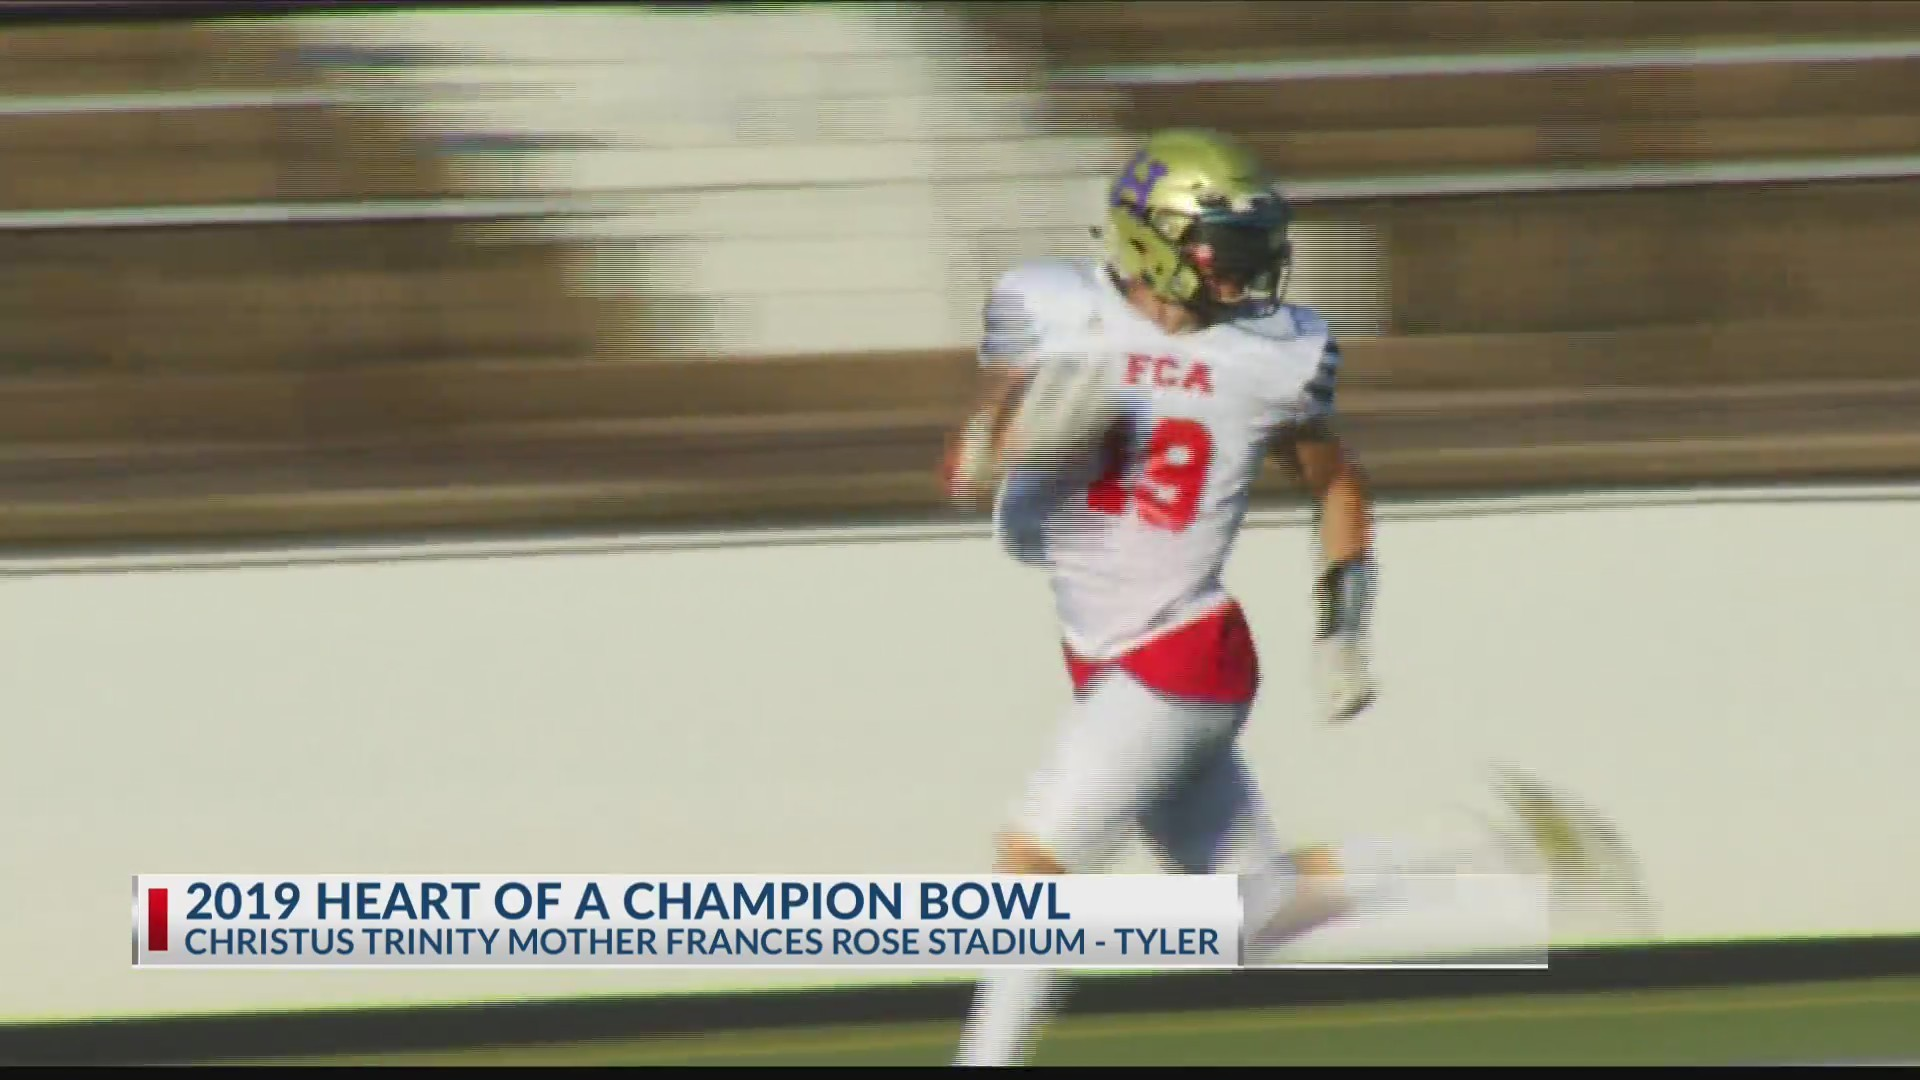 2019_FCA_Heart_of_a_Champion_Bowl_0_20190609034348